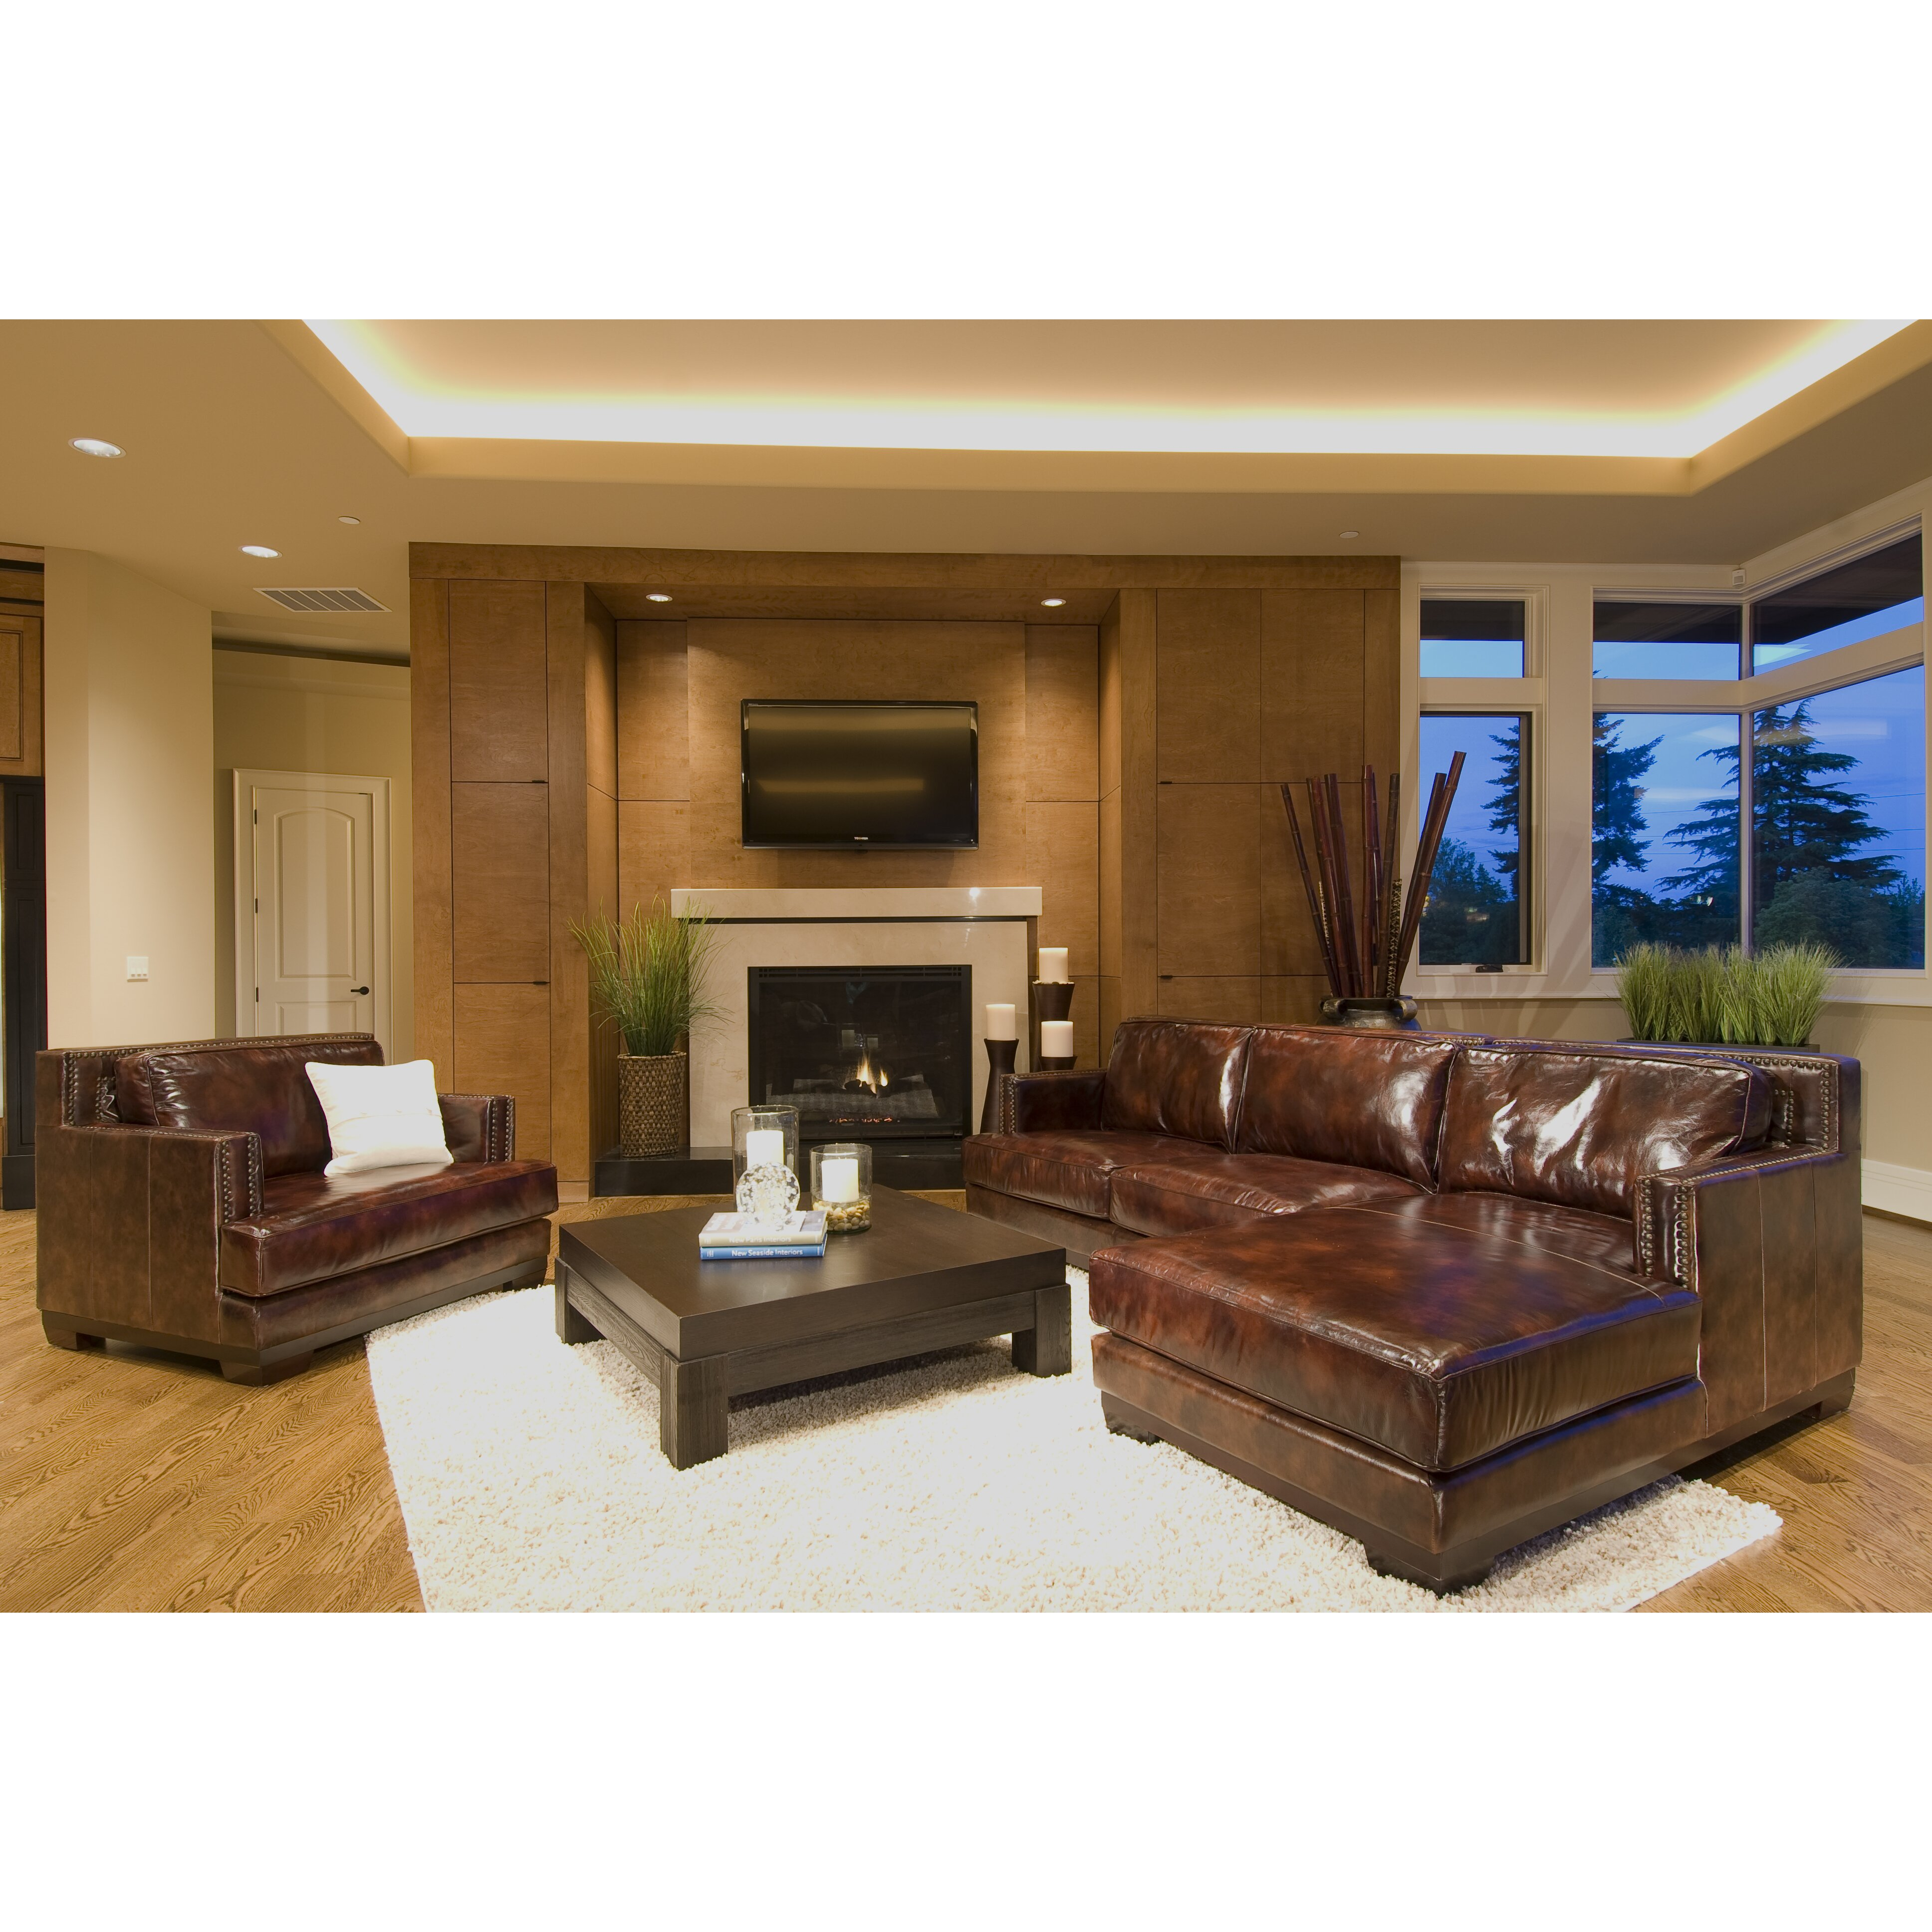 elements fine home furnishings davis living room. Black Bedroom Furniture Sets. Home Design Ideas